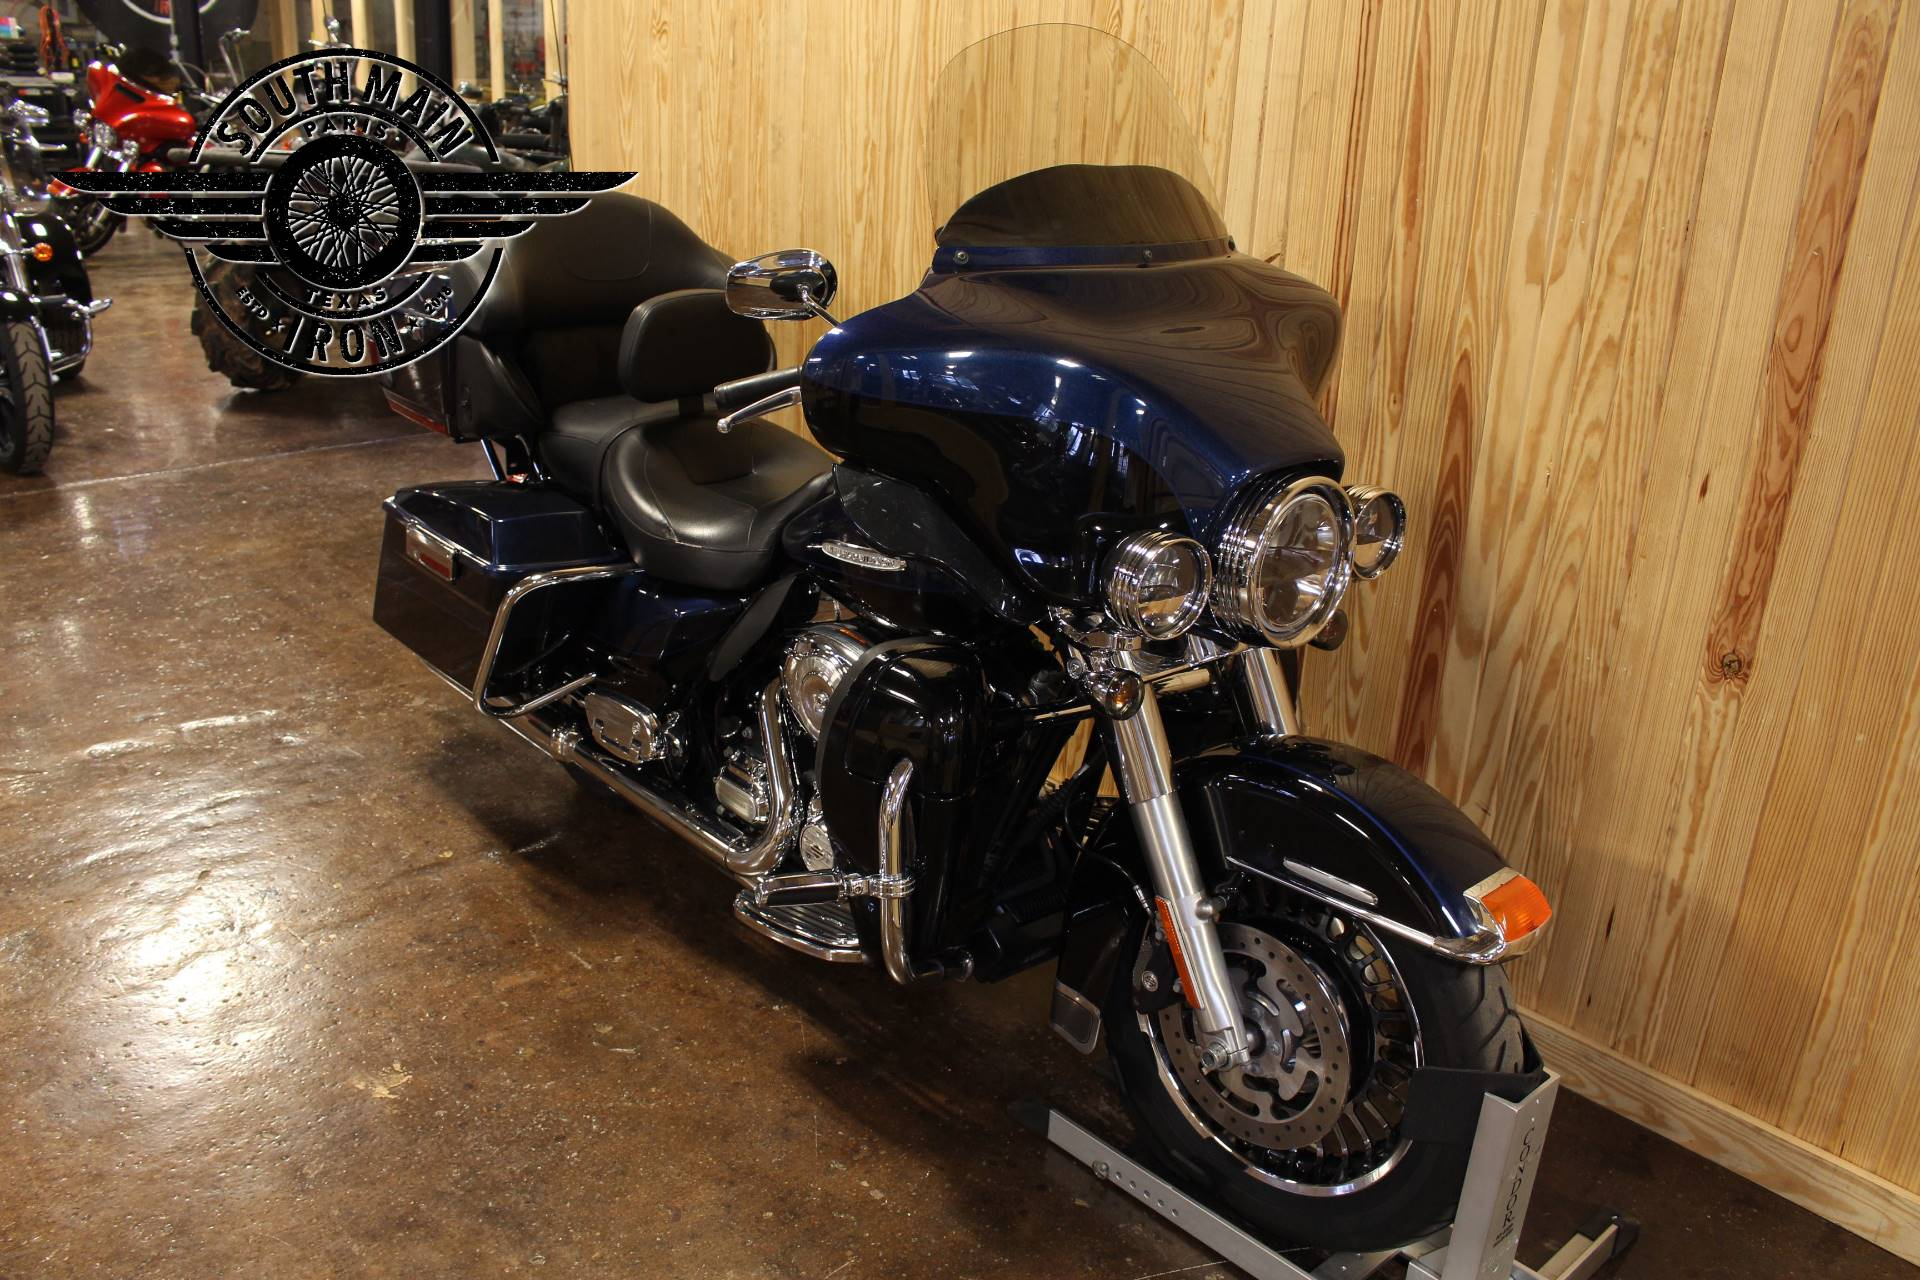 2012 Harley-Davidson Electra Glide® Ultra Limited in Paris, Texas - Photo 2